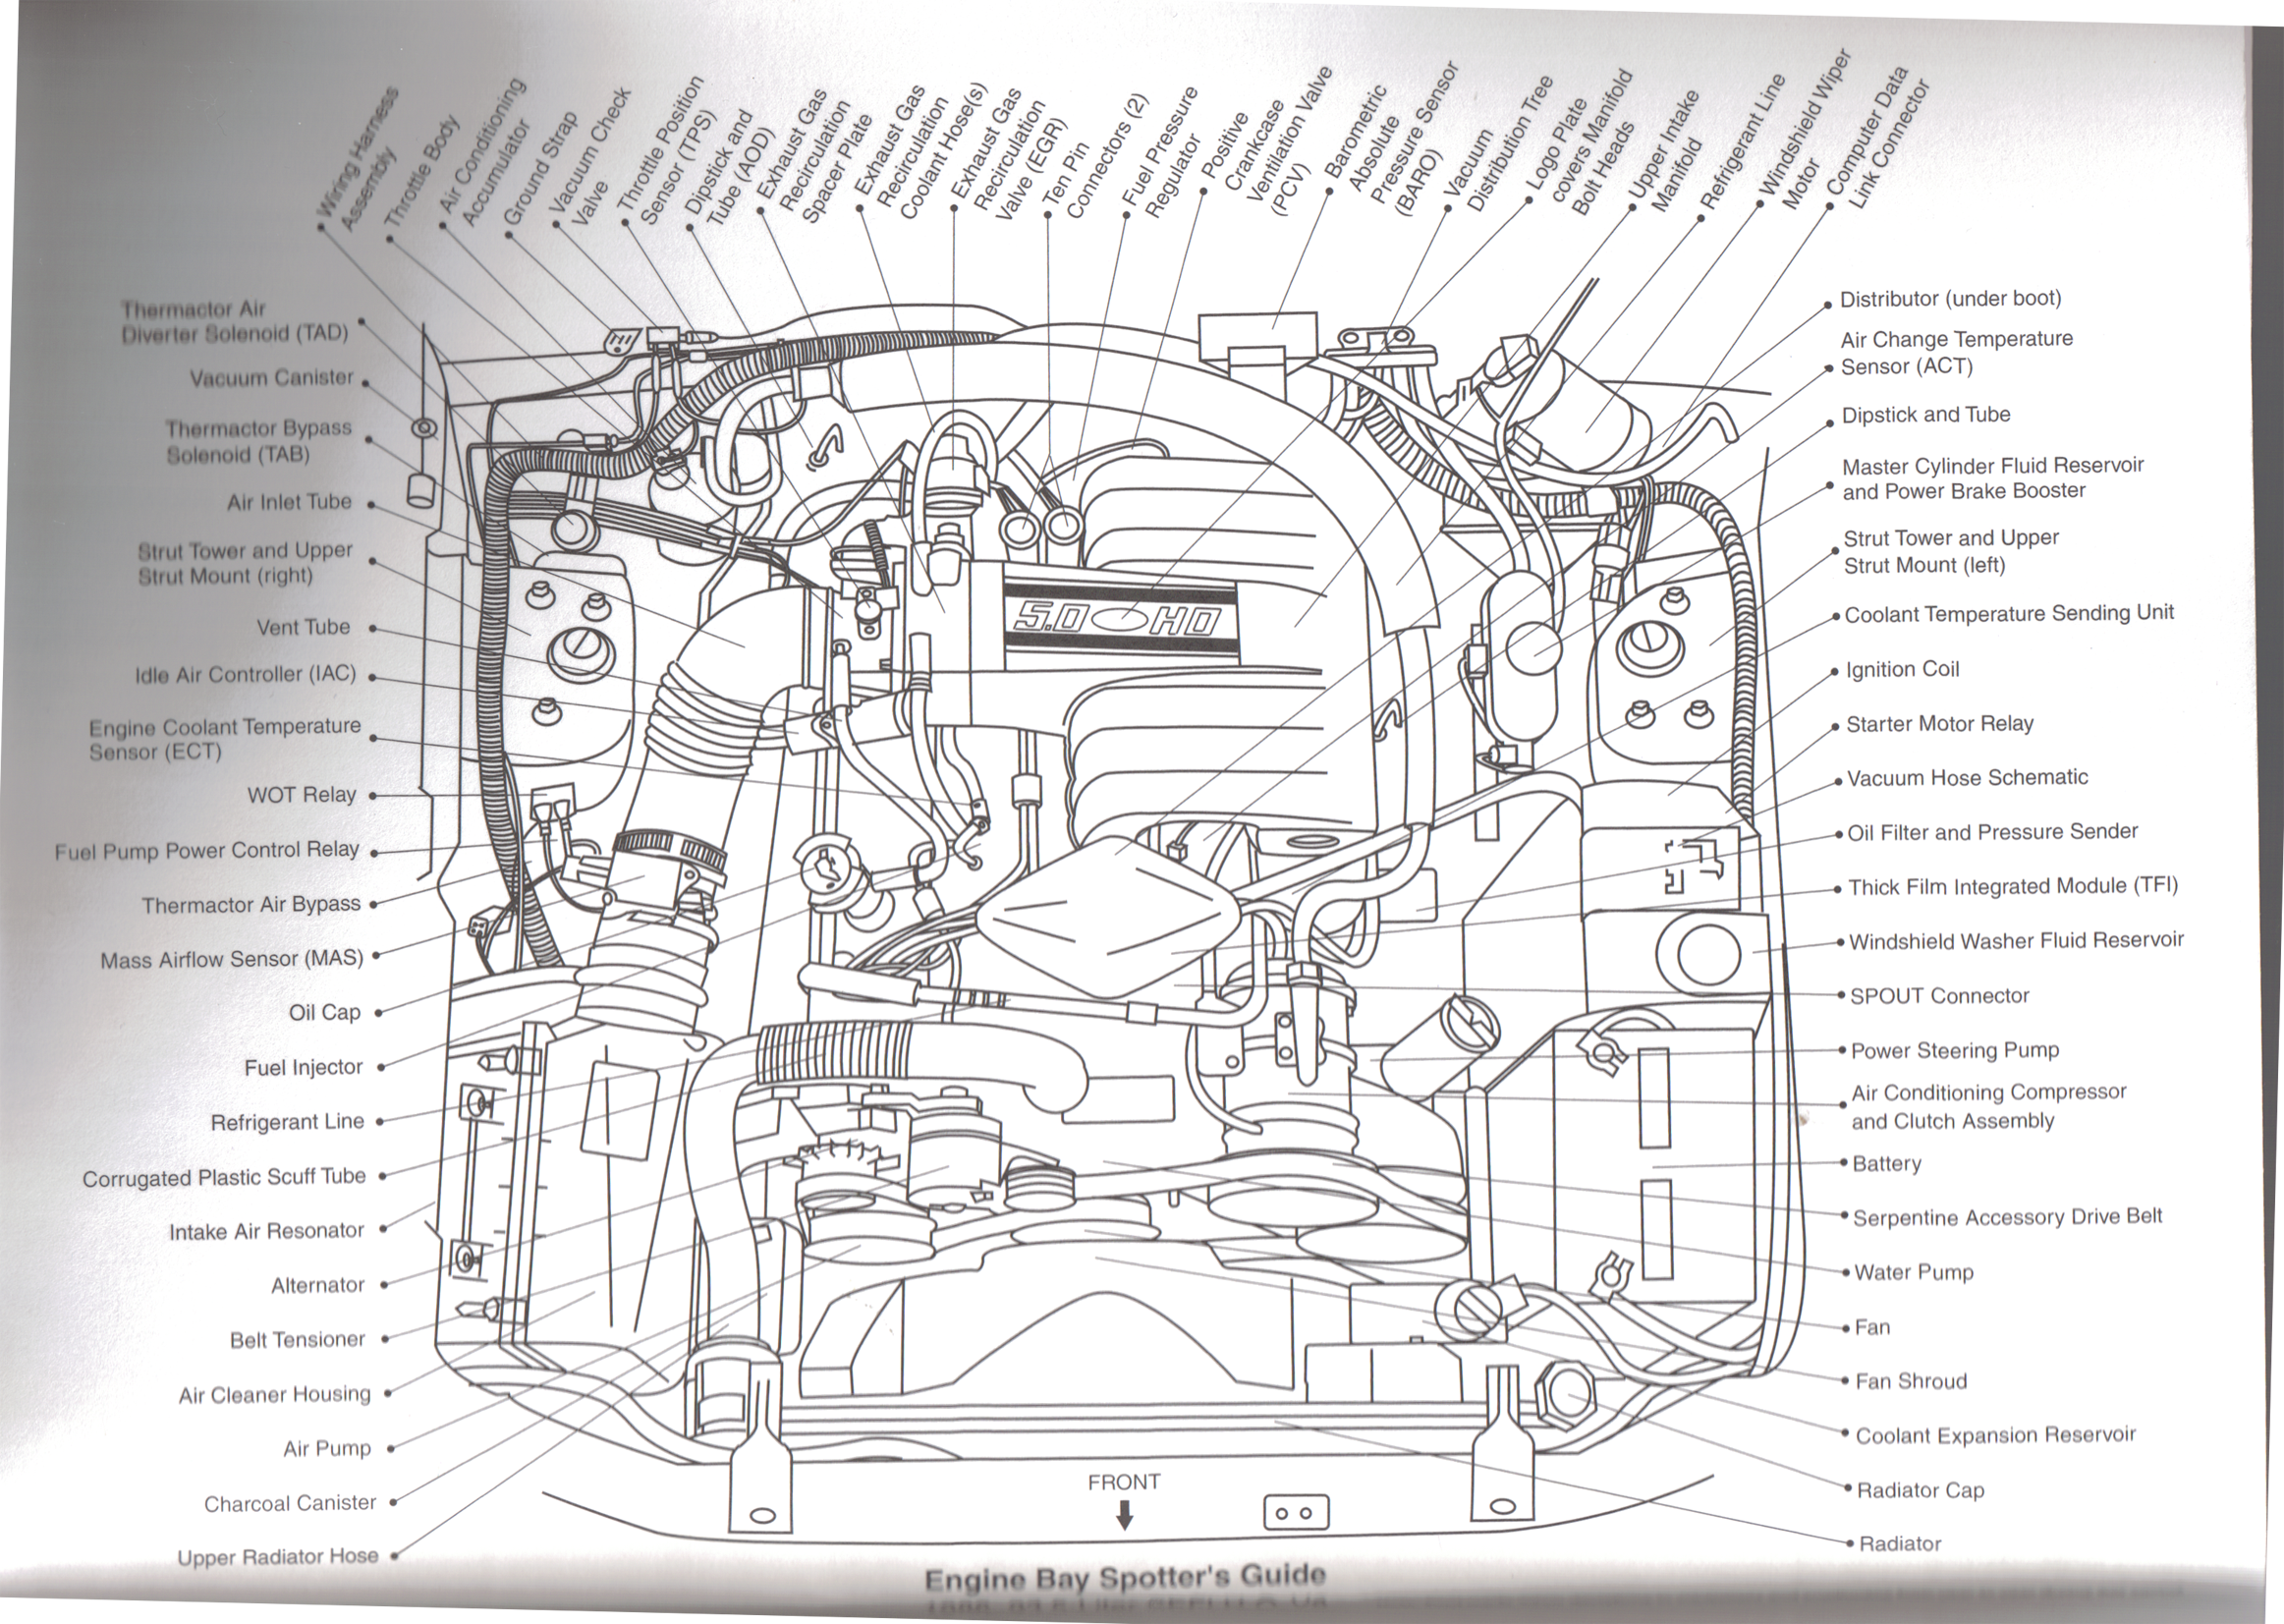 1986 Ford Mustang Lx Engine Diagram Just Another Wiring Blog 83 Harness Everything You Need To Know About 1979 1993 Foxbody Mustangs Rh Americanmuscle Com 1987